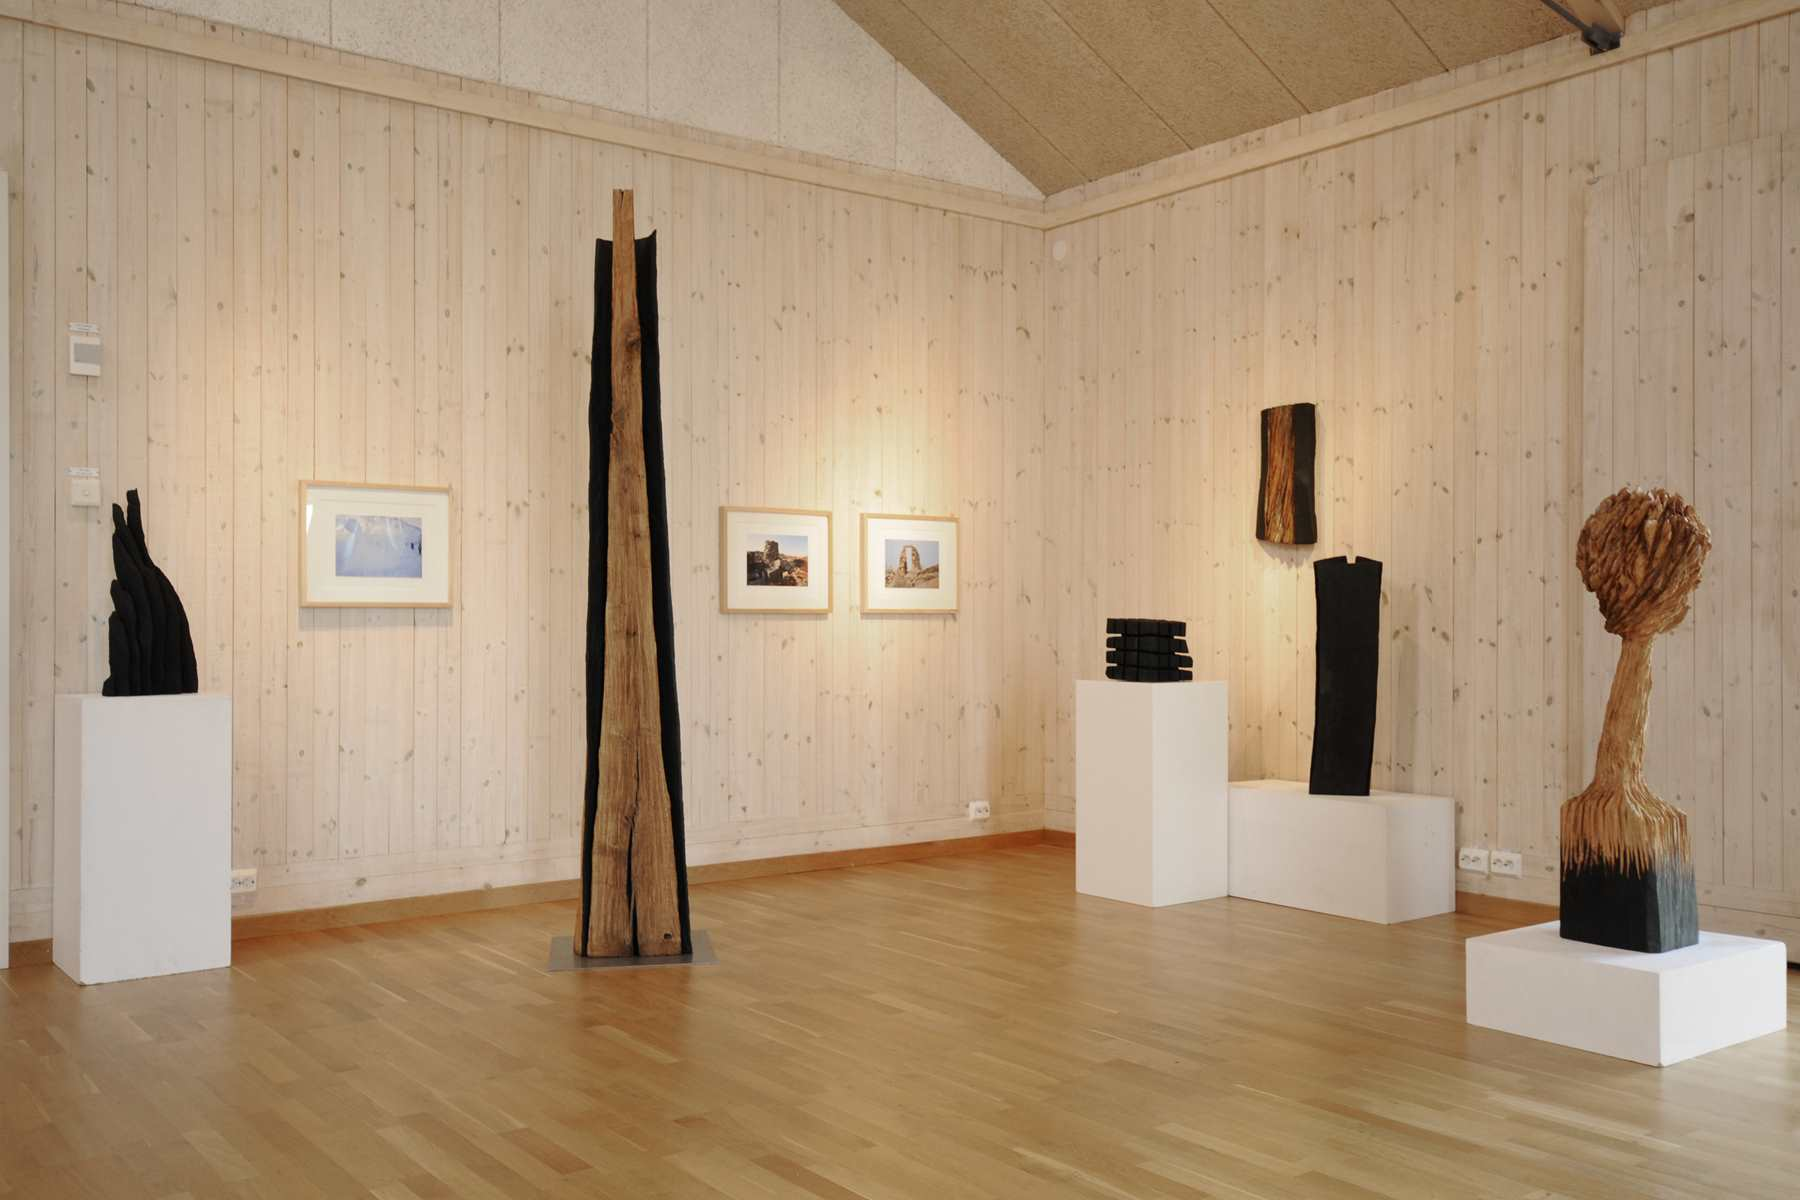 ORUST, Sweden, 2008. Exhibition by Karl Chilcott.